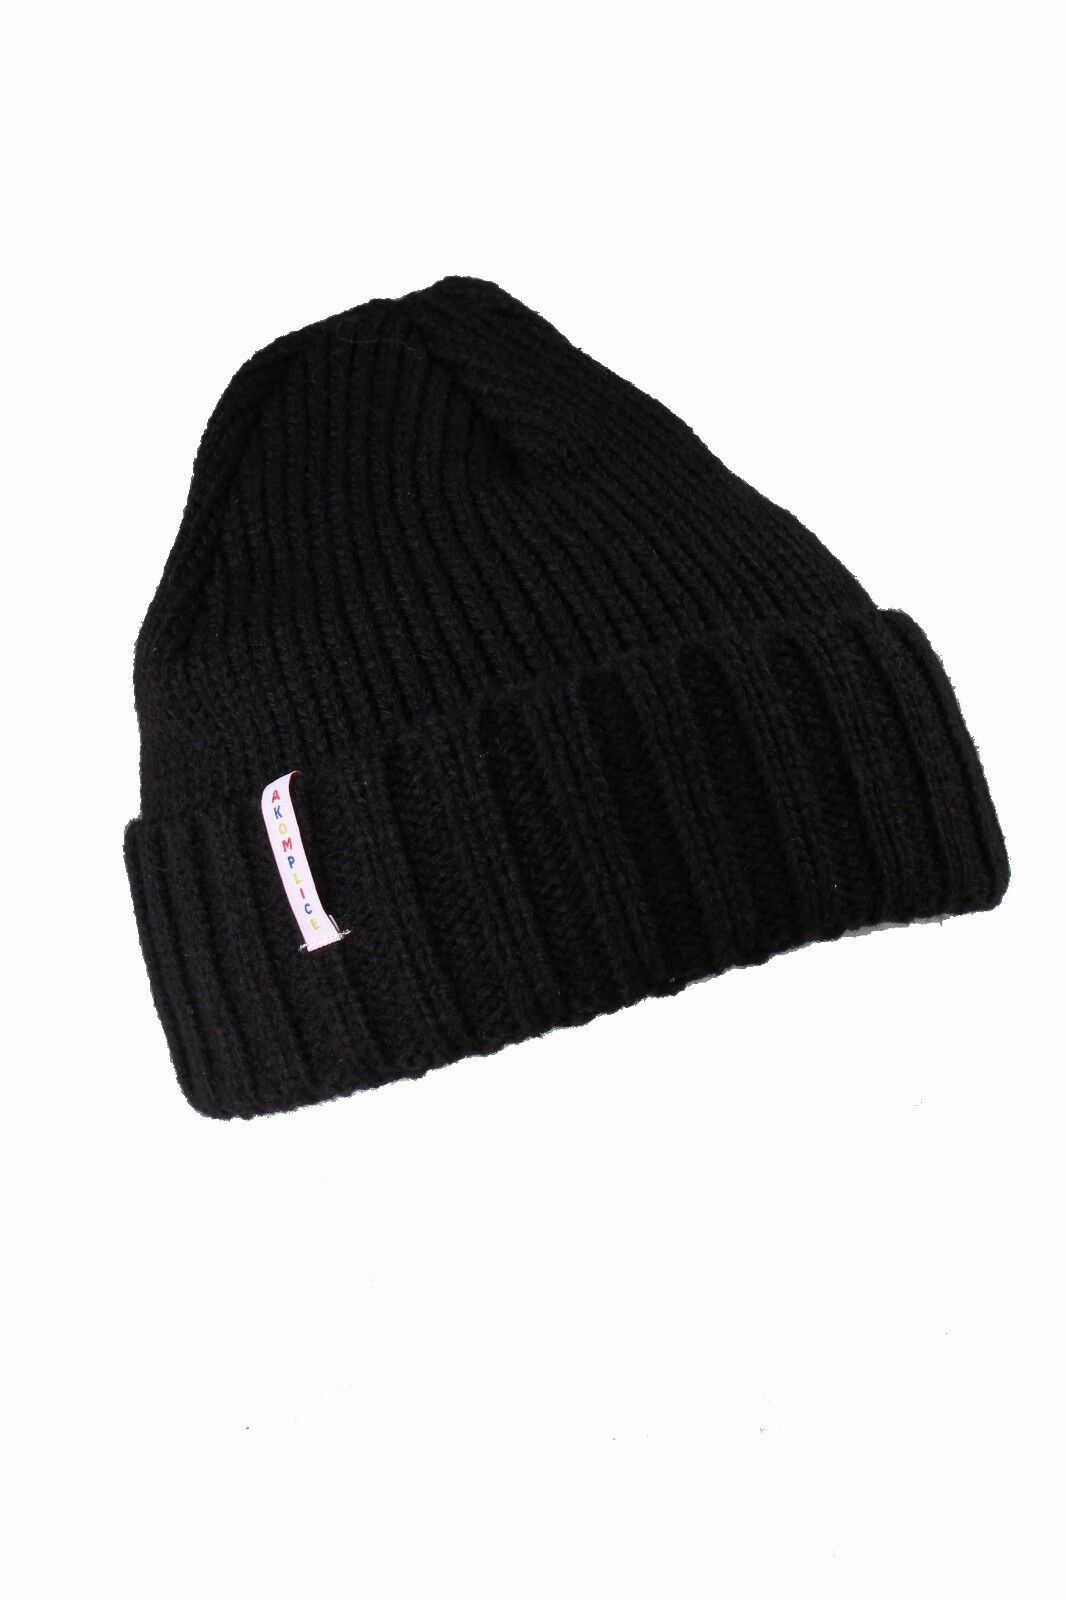 Akomplice Clothing Men's The Primary Beanie Hat BLK NWT